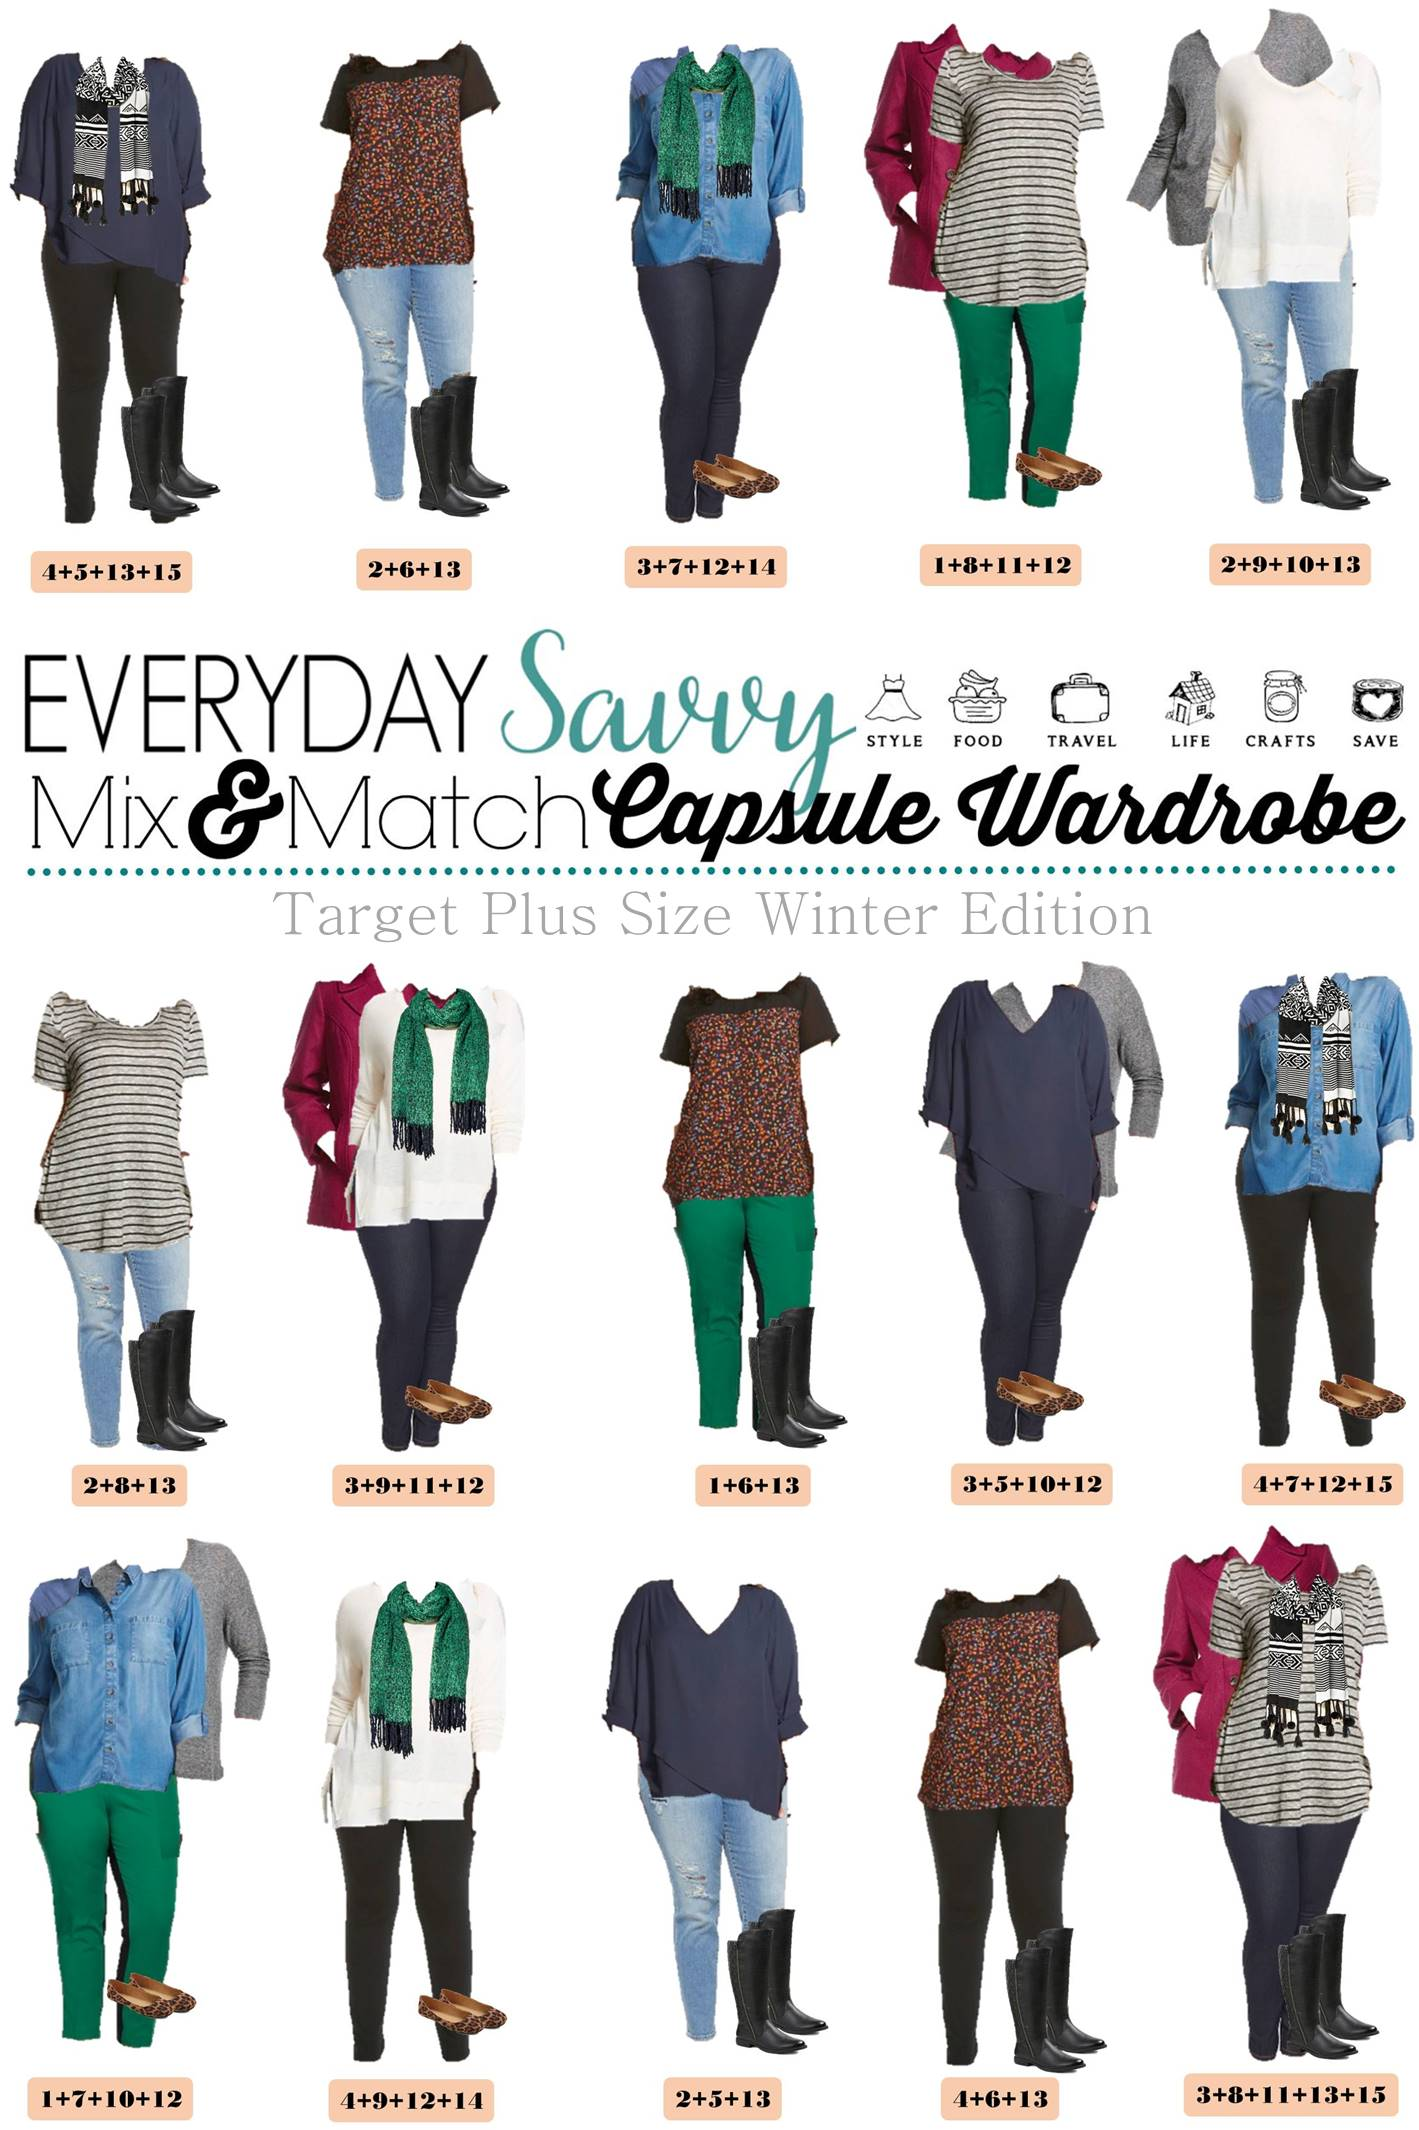 Target Work Shirts Winter Plus Size Capsule Wardrobe From Target